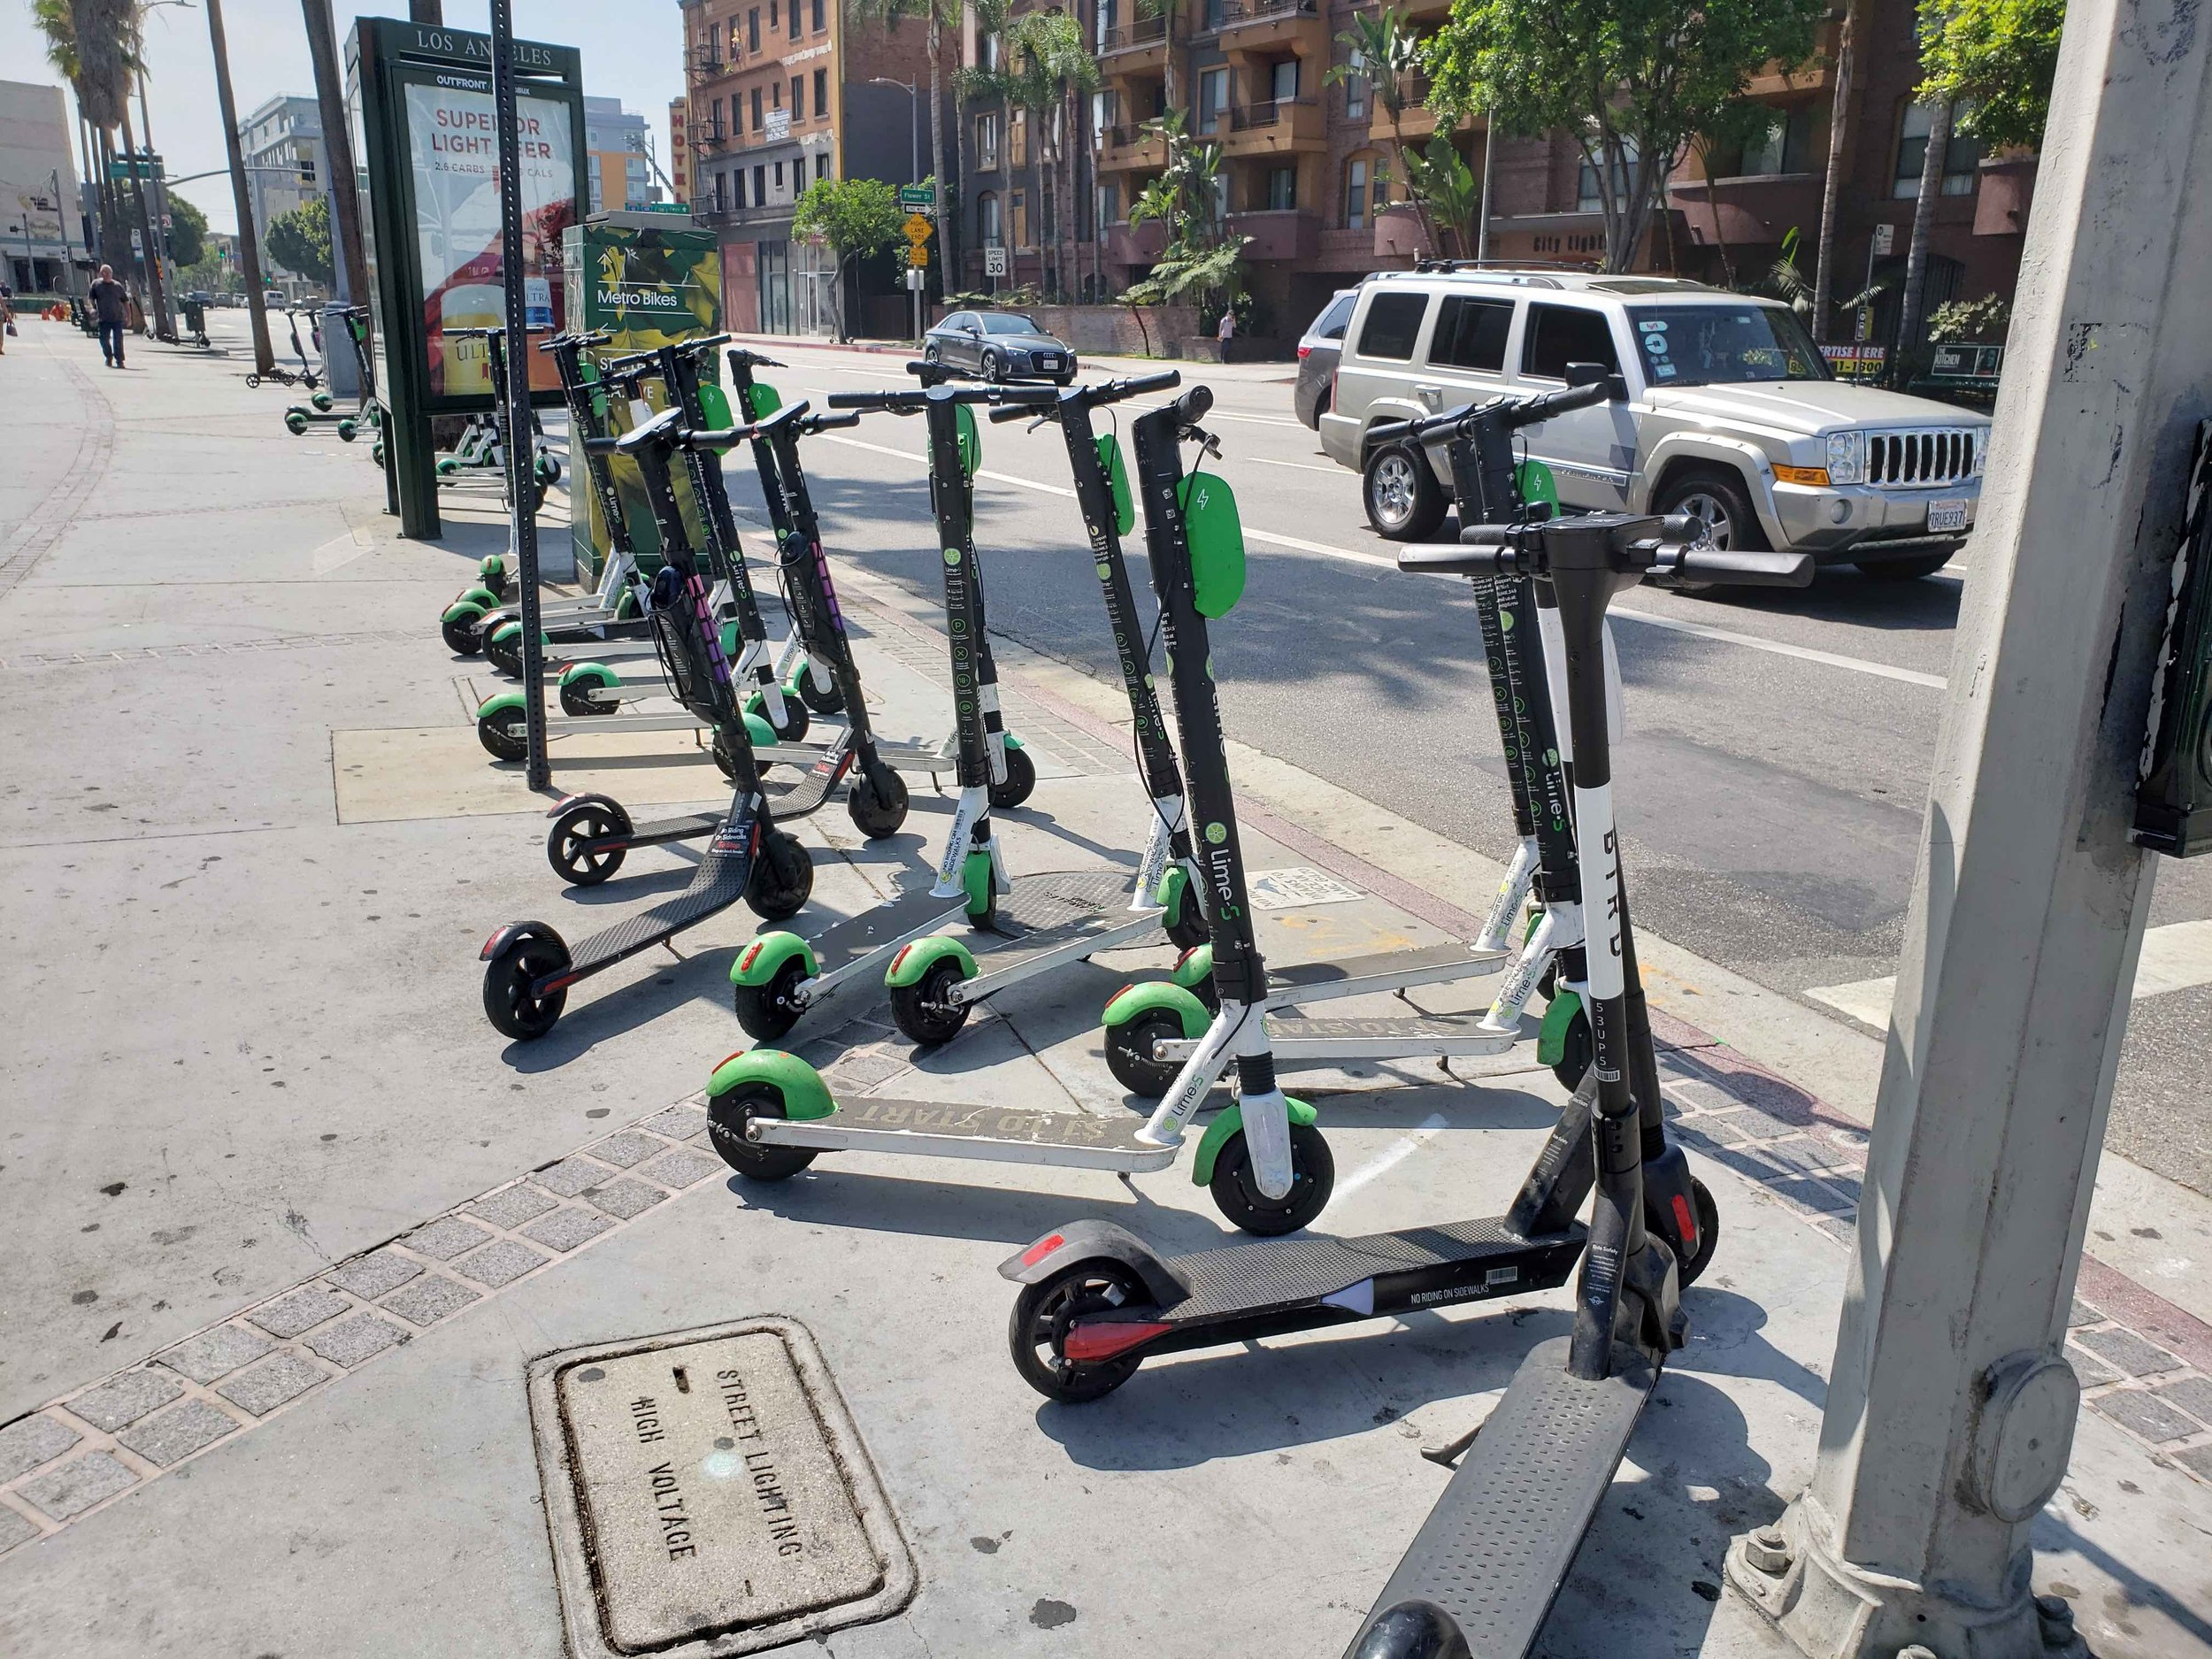 Scooters lined up in downtown Los Angeles—social norms about parking them out of the way of sidewalk users seem to have emerged in the absence of any formal parking arrangements. (Photo by Daniel Herriges)